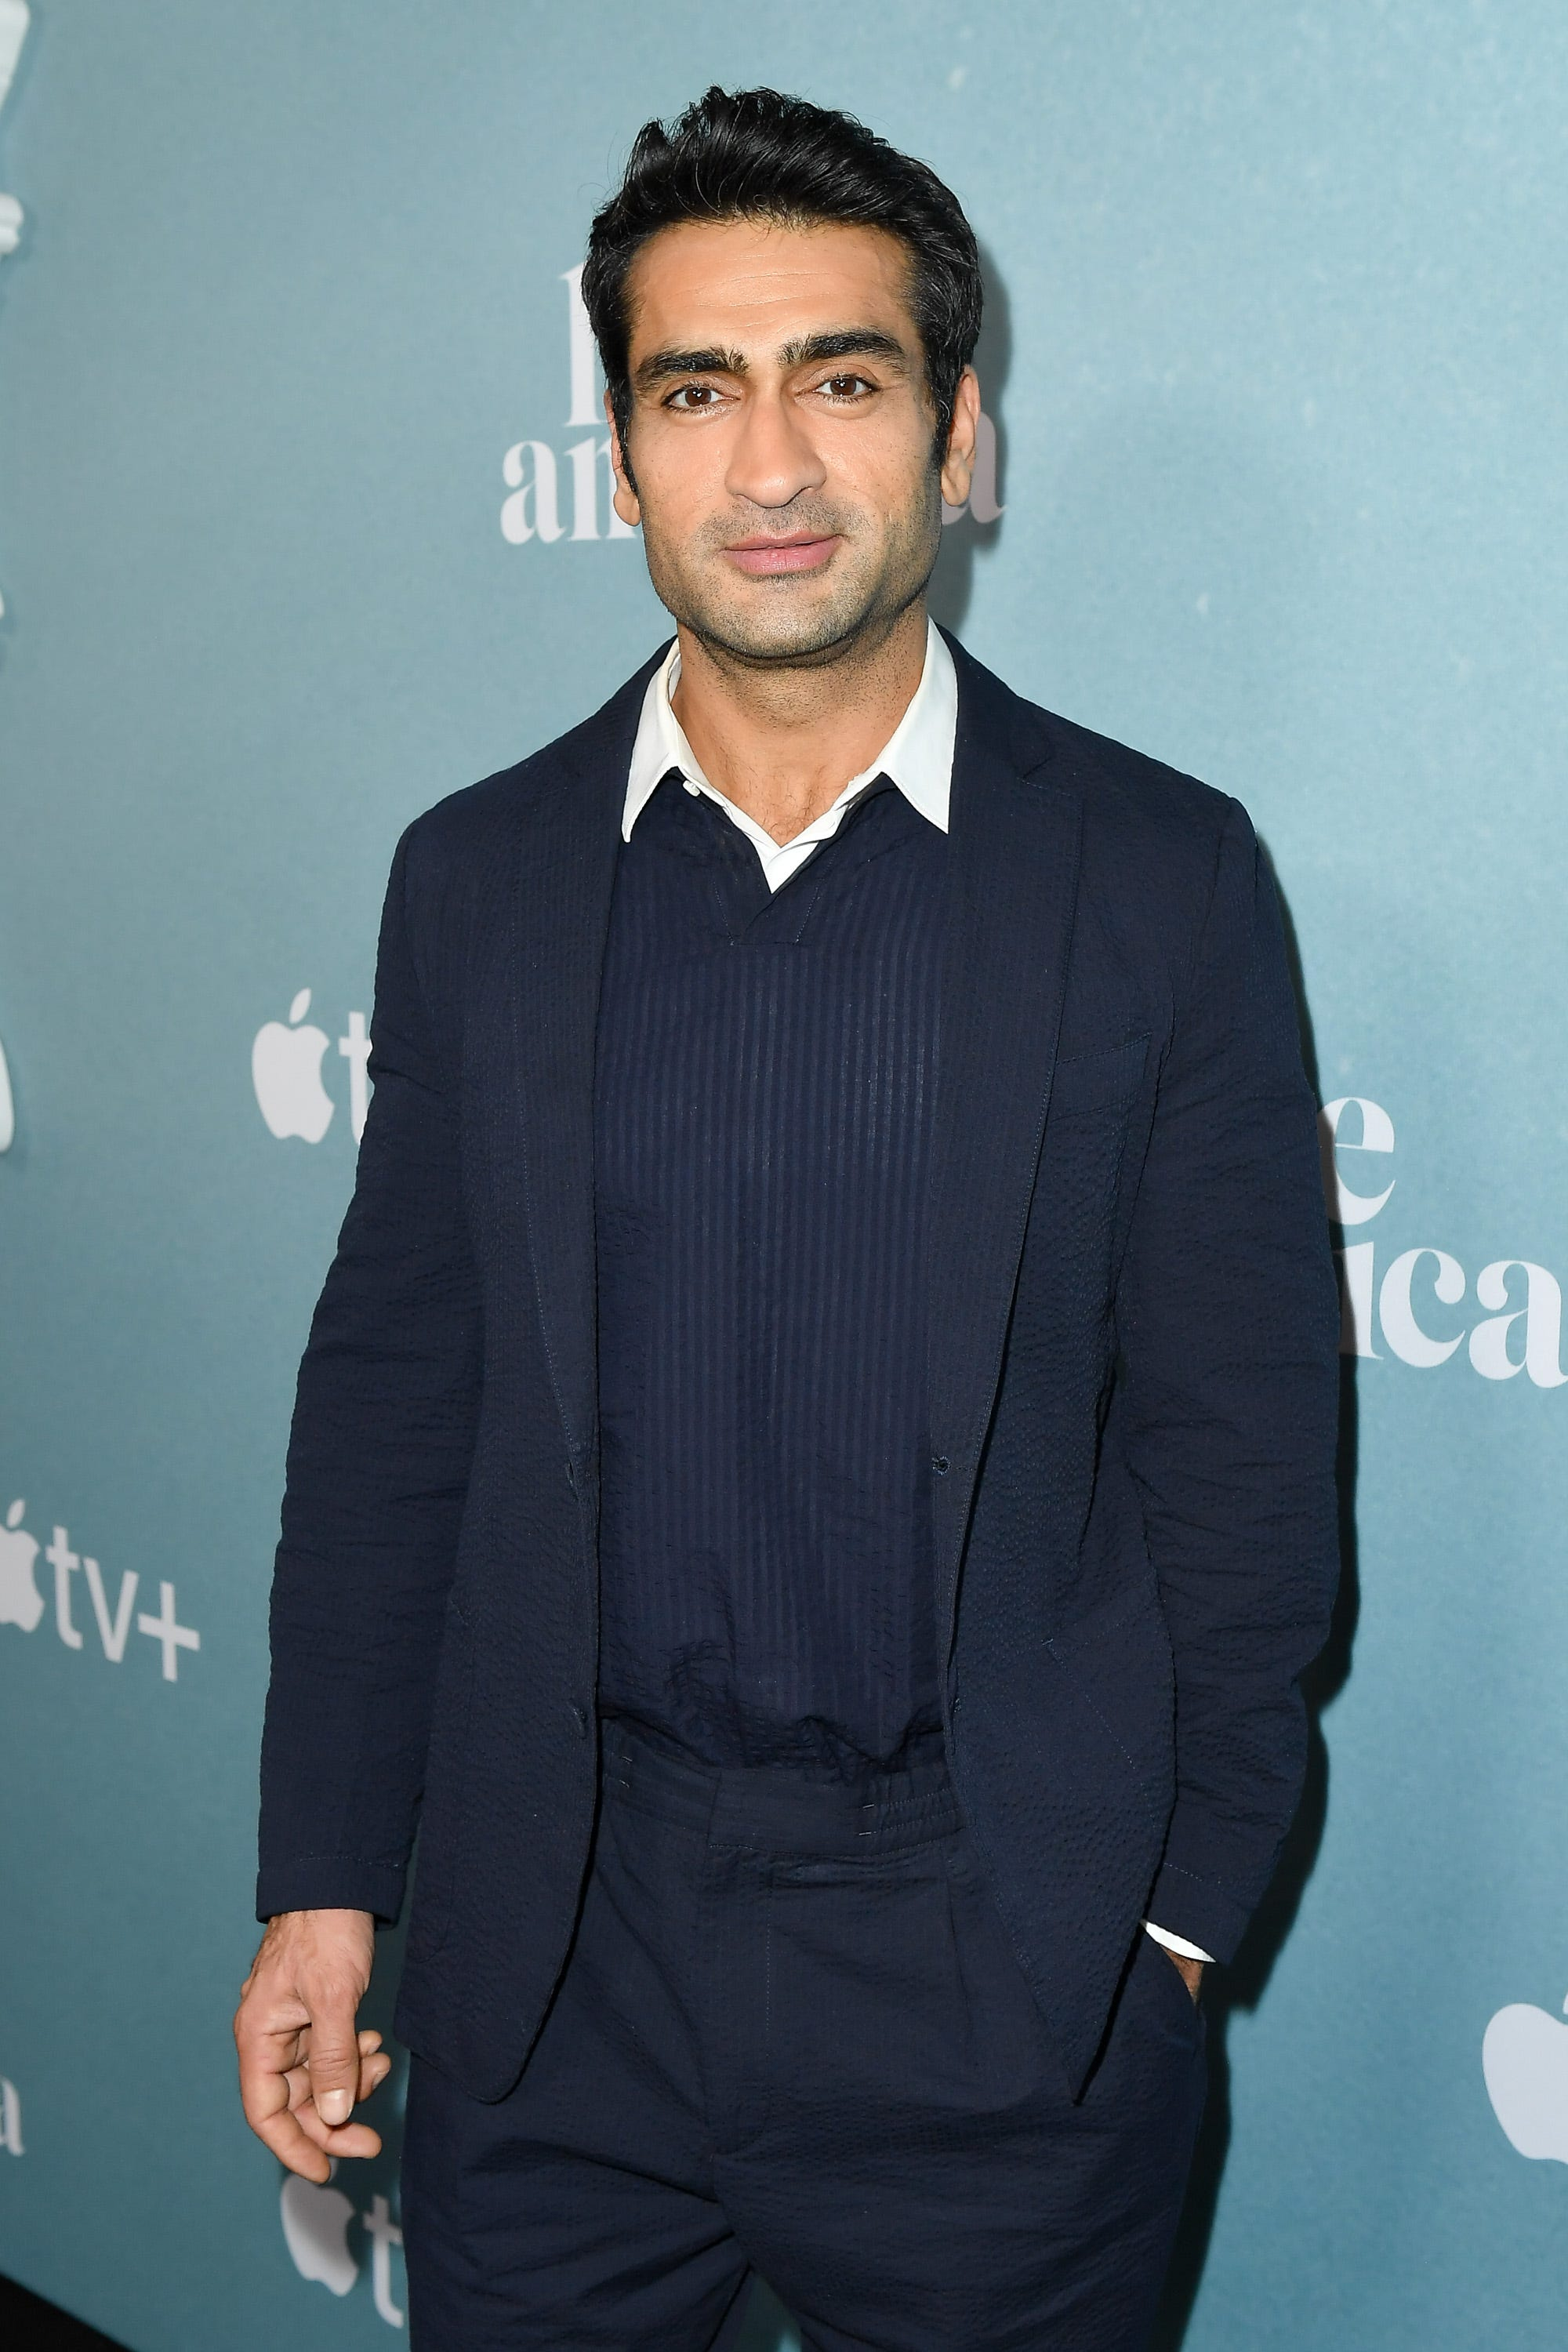 What the outcry from Kumail Nanjiani s sculpted body tells us about racism, masculinity standards